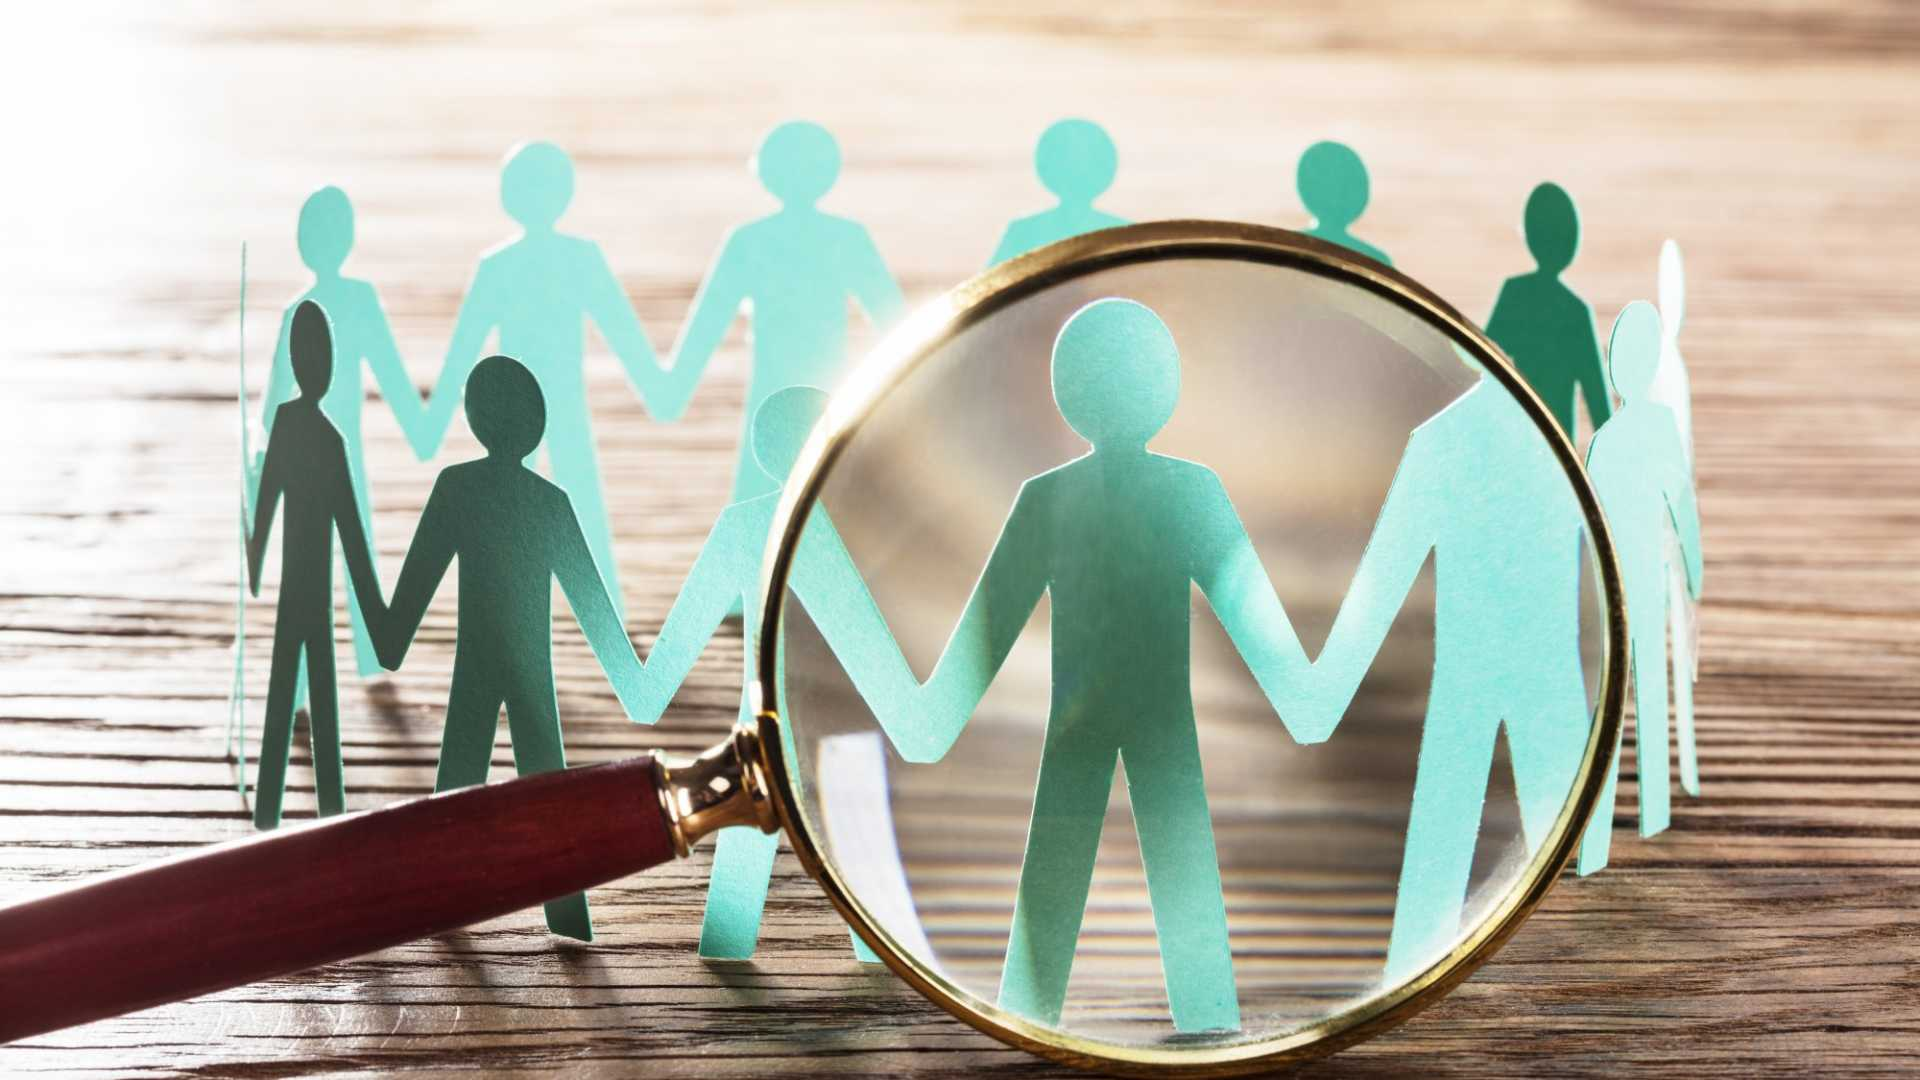 5 Things to Help You Stand Out in a Competitive Job Market